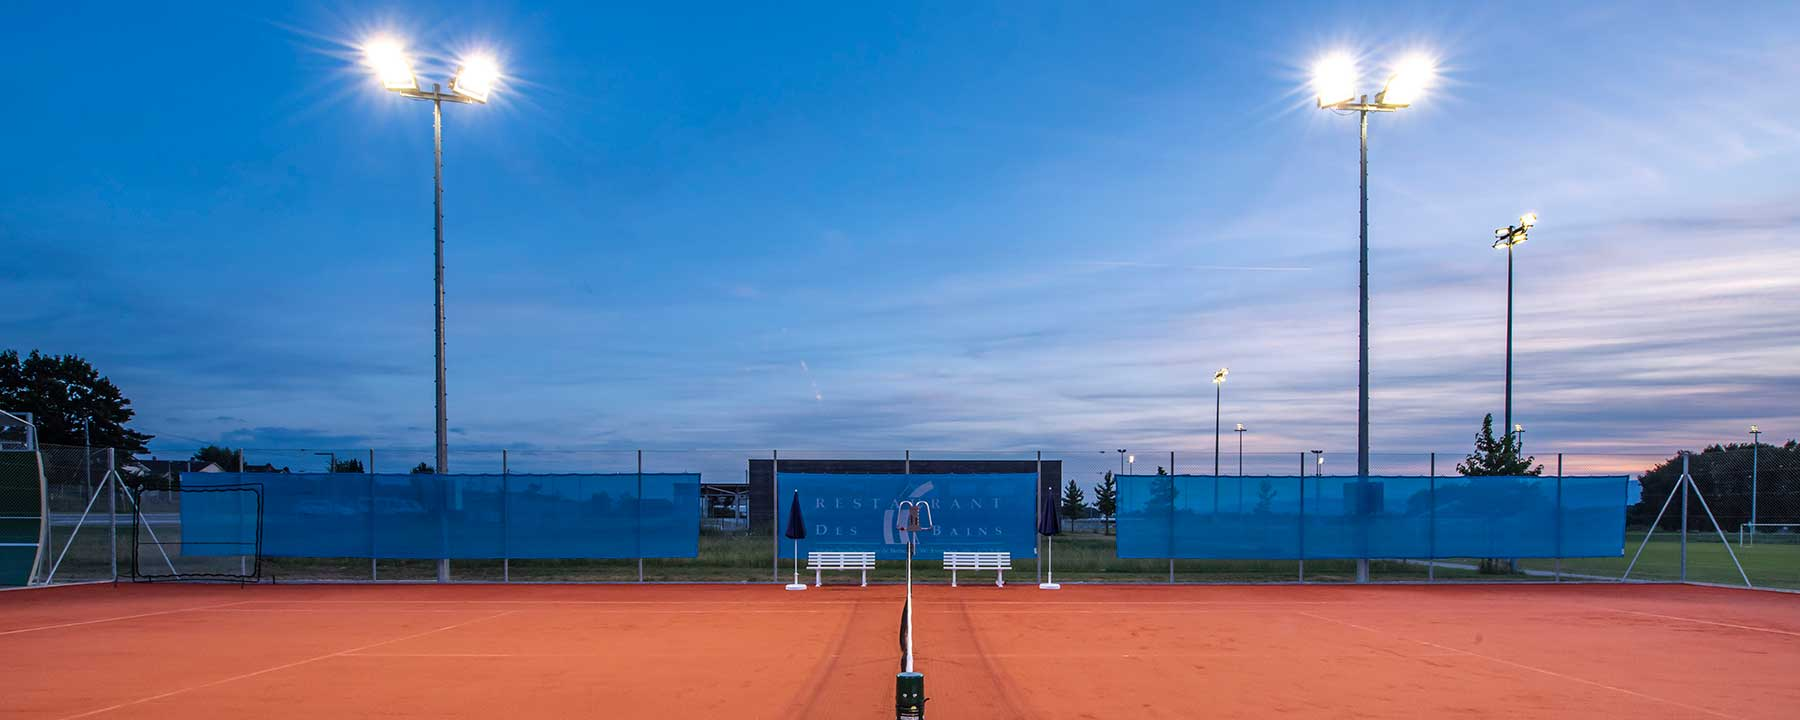 Get the local community practising sport with high-quality lighting in your sports facilities